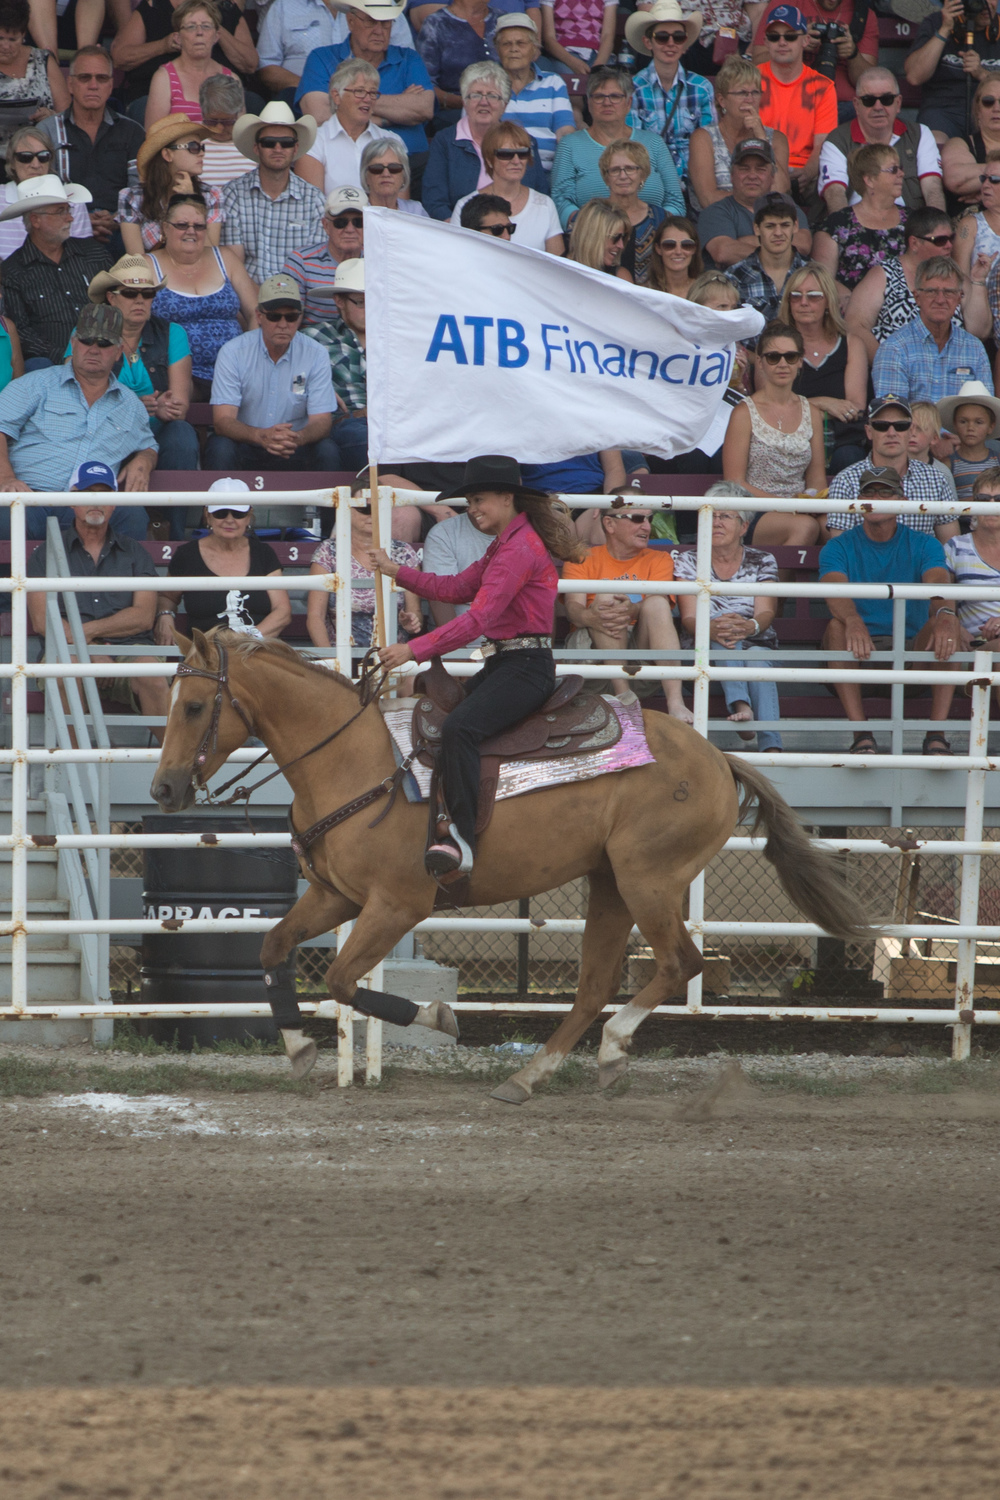 Thank you to  ATB Financial  for being a Gold Sponsor!